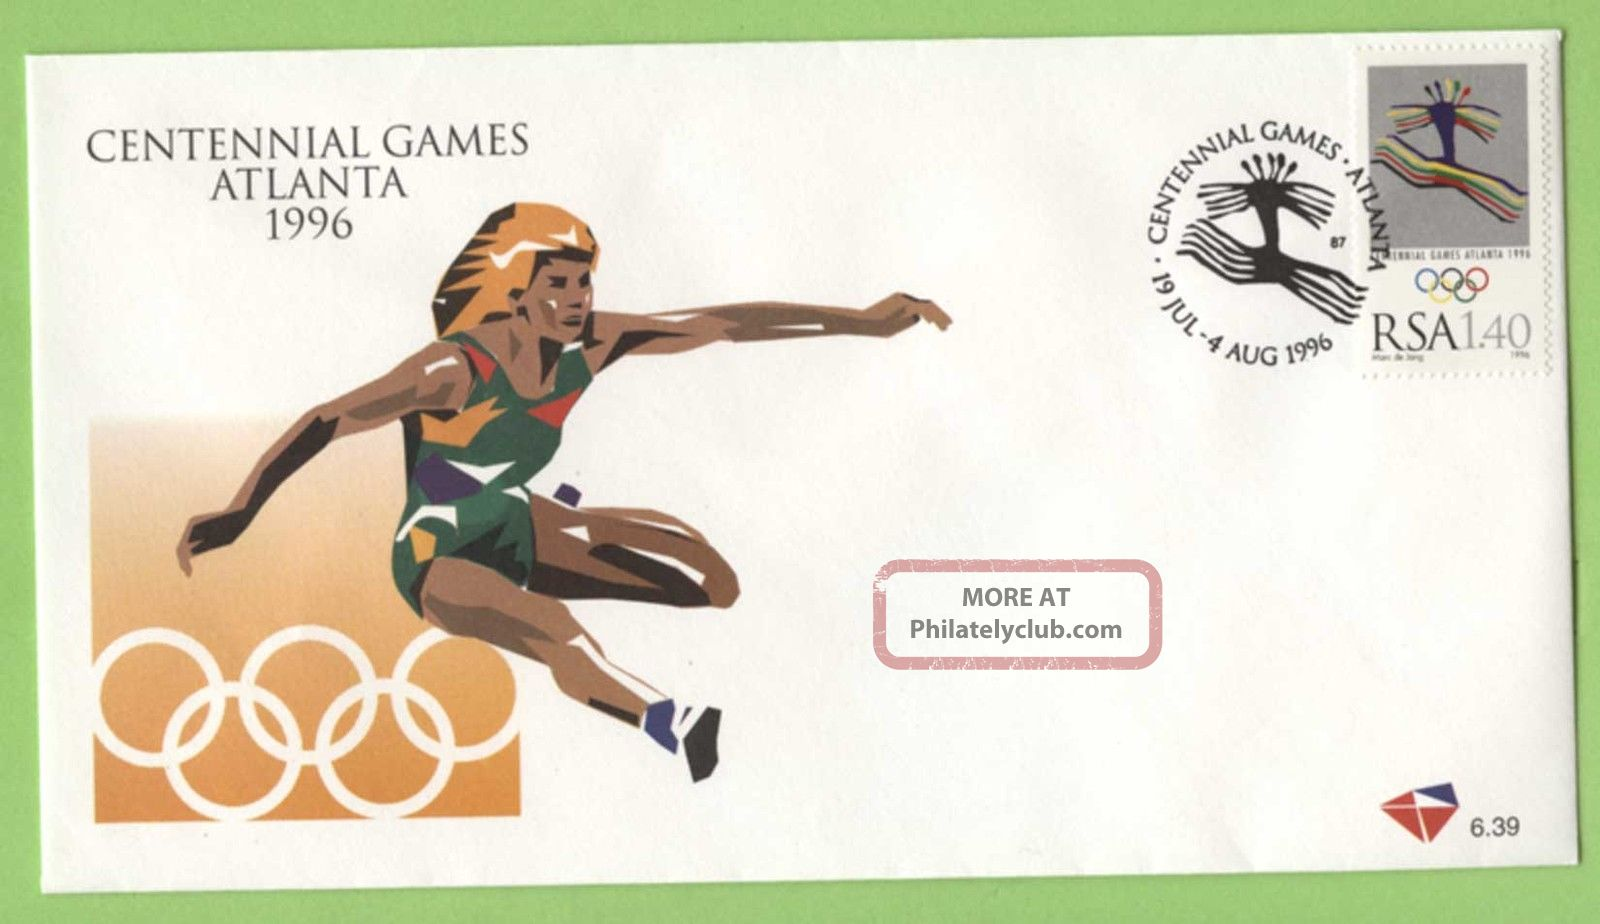 South Africa 1996 Olympic Games,  Atlanta 1.  40 First Day Cover Africa photo